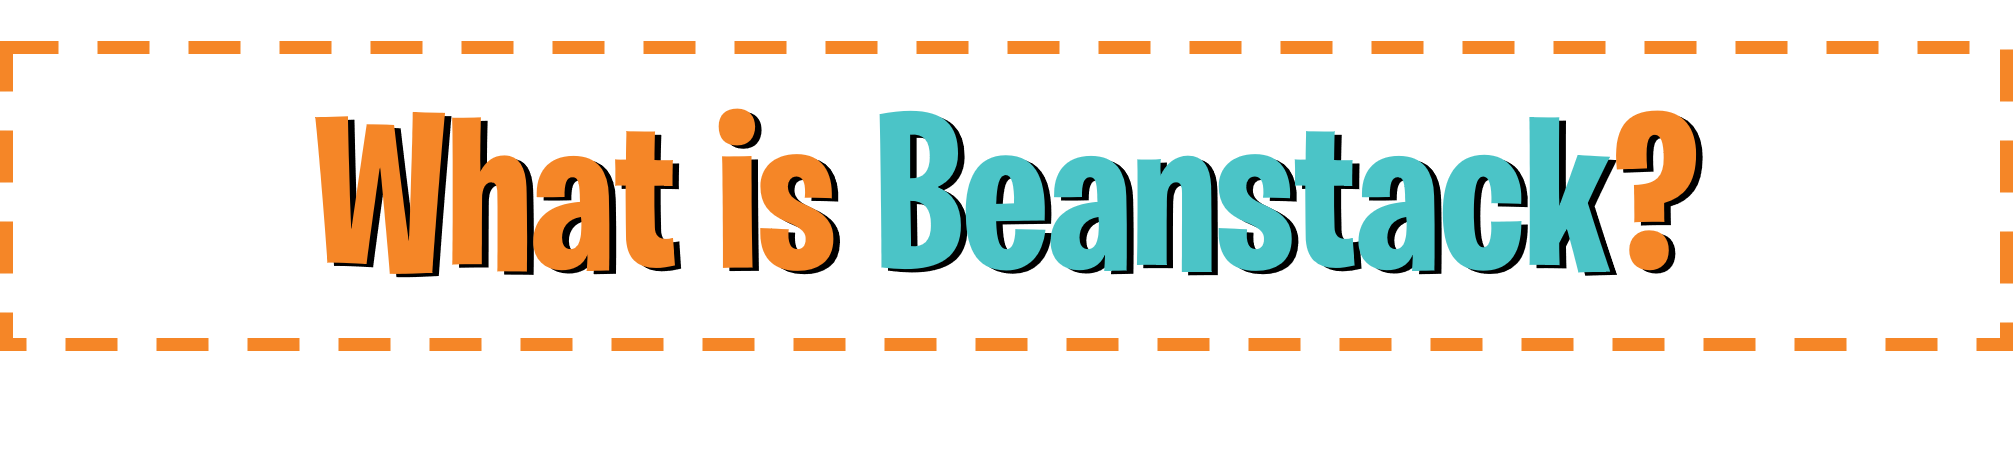 What is Beanstack?